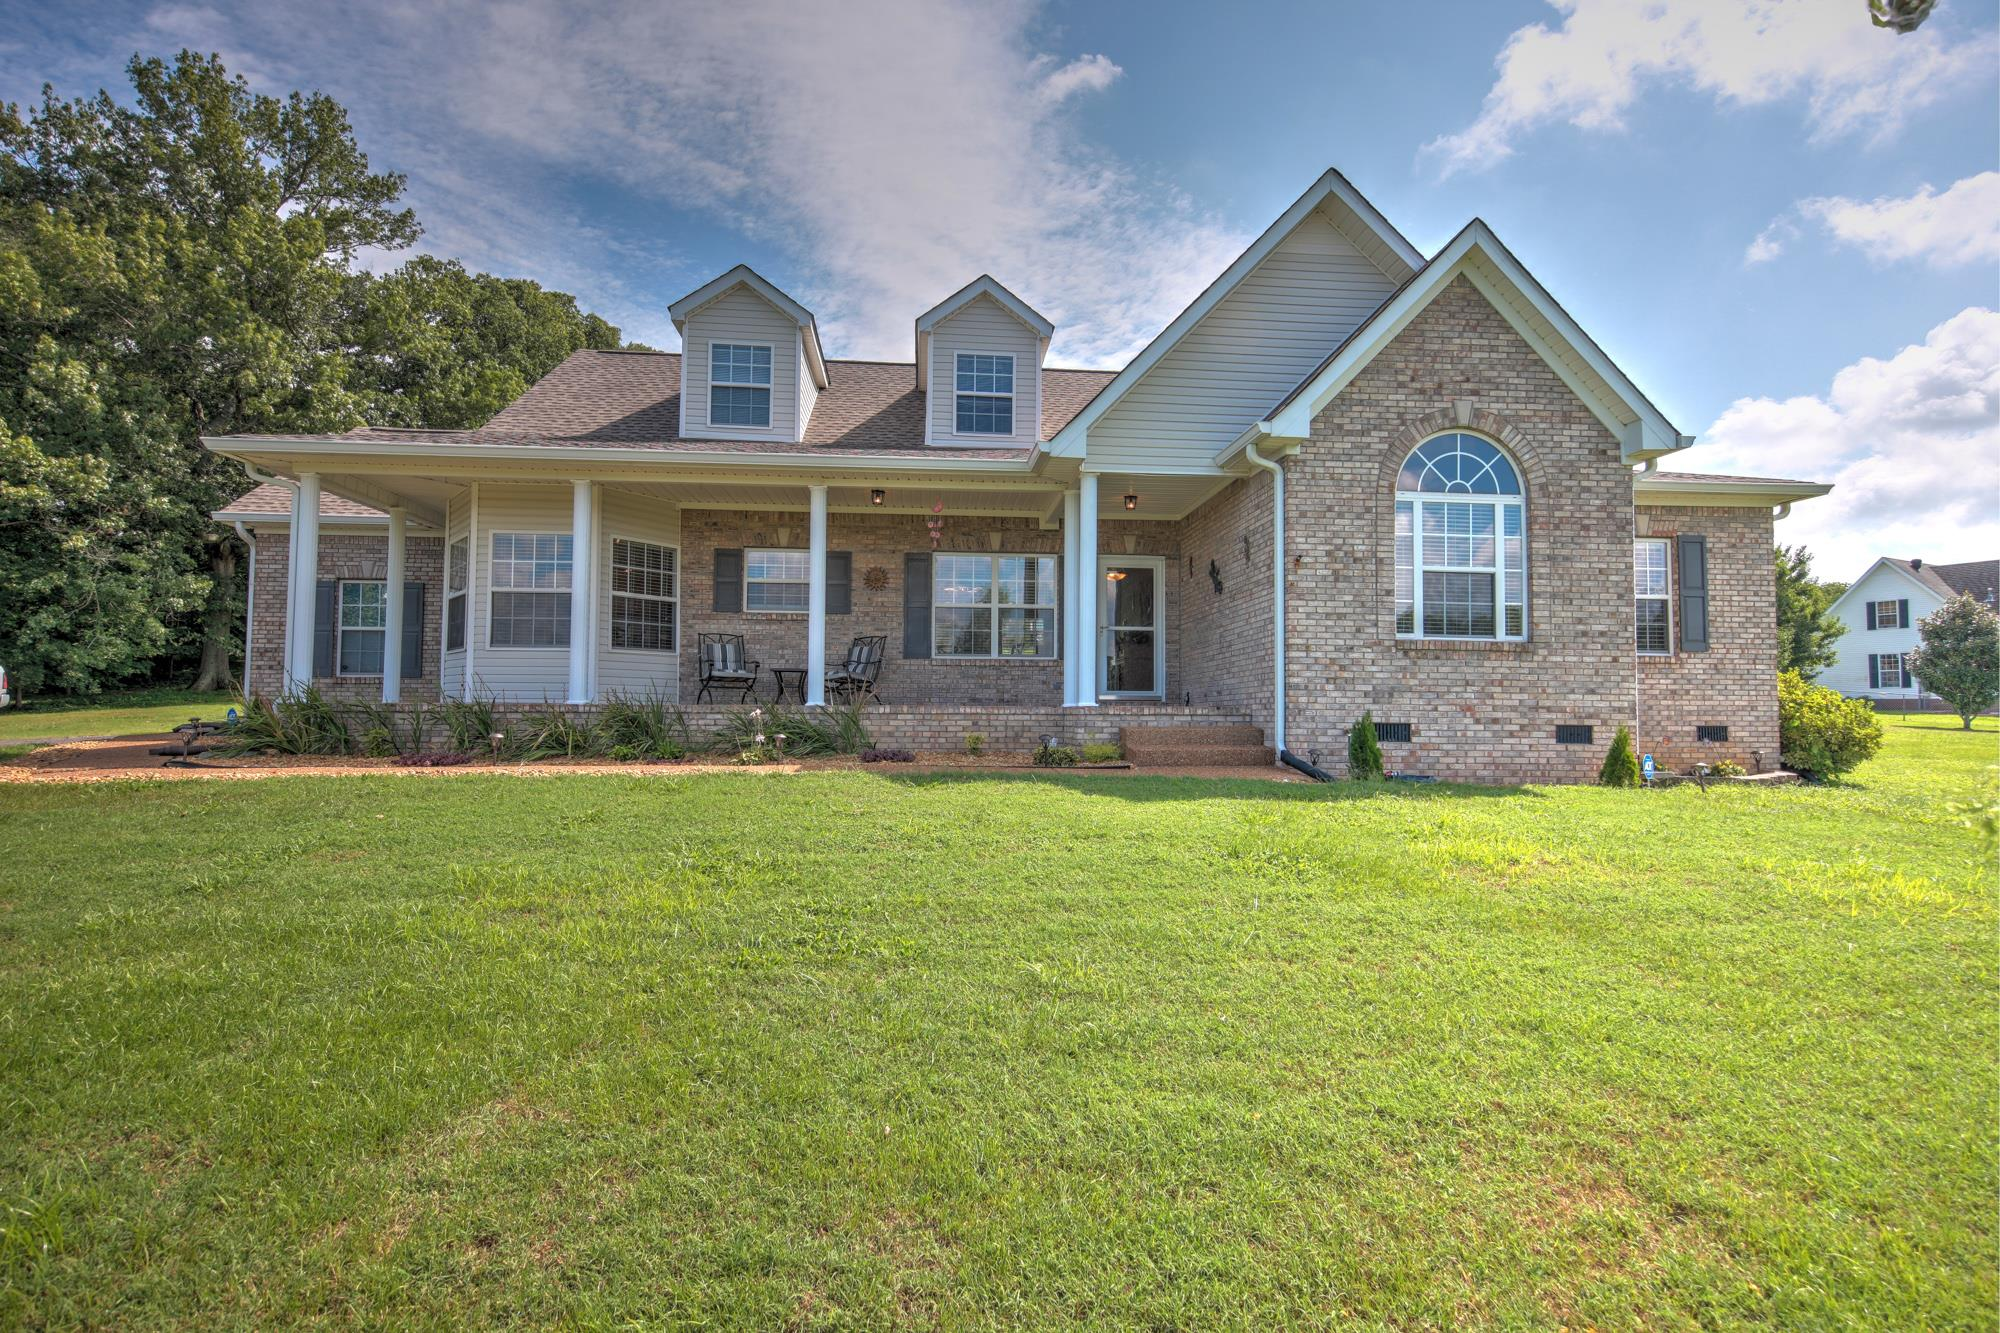 216 Red Oak Trl, Spring Hill, TN 37174 - Spring Hill, TN real estate listing